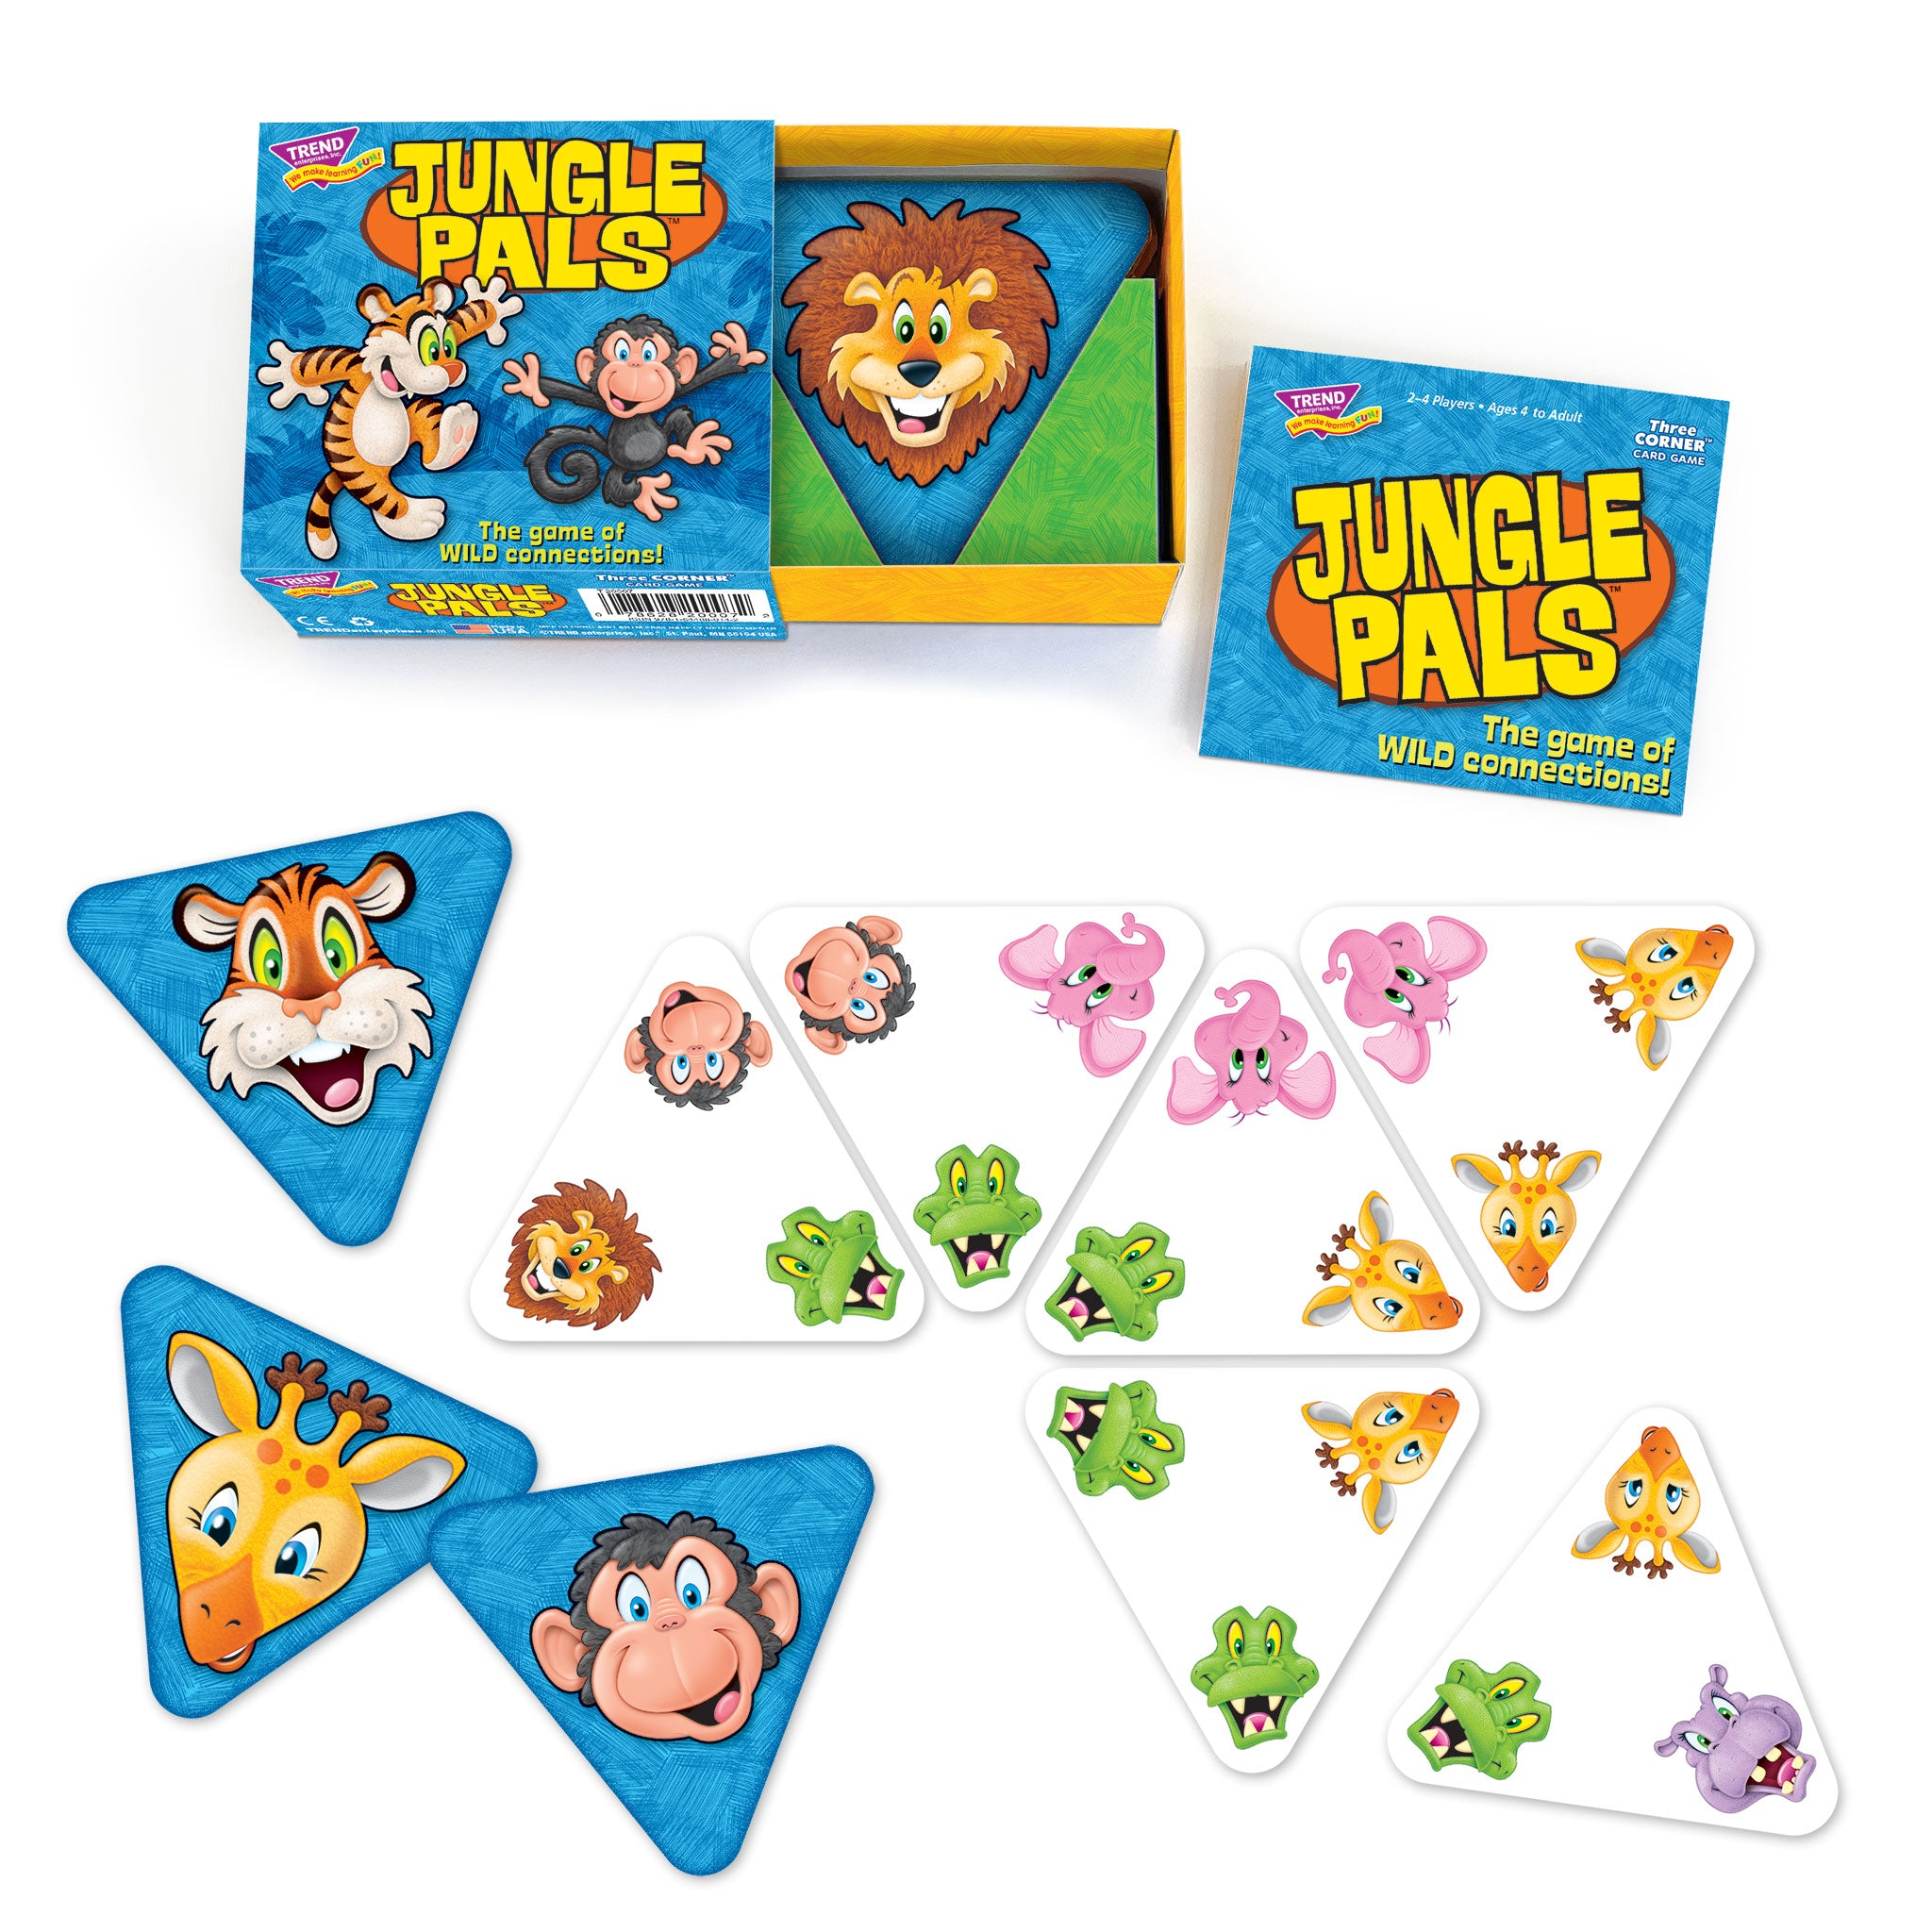 Jungle Pals card game triangle cards